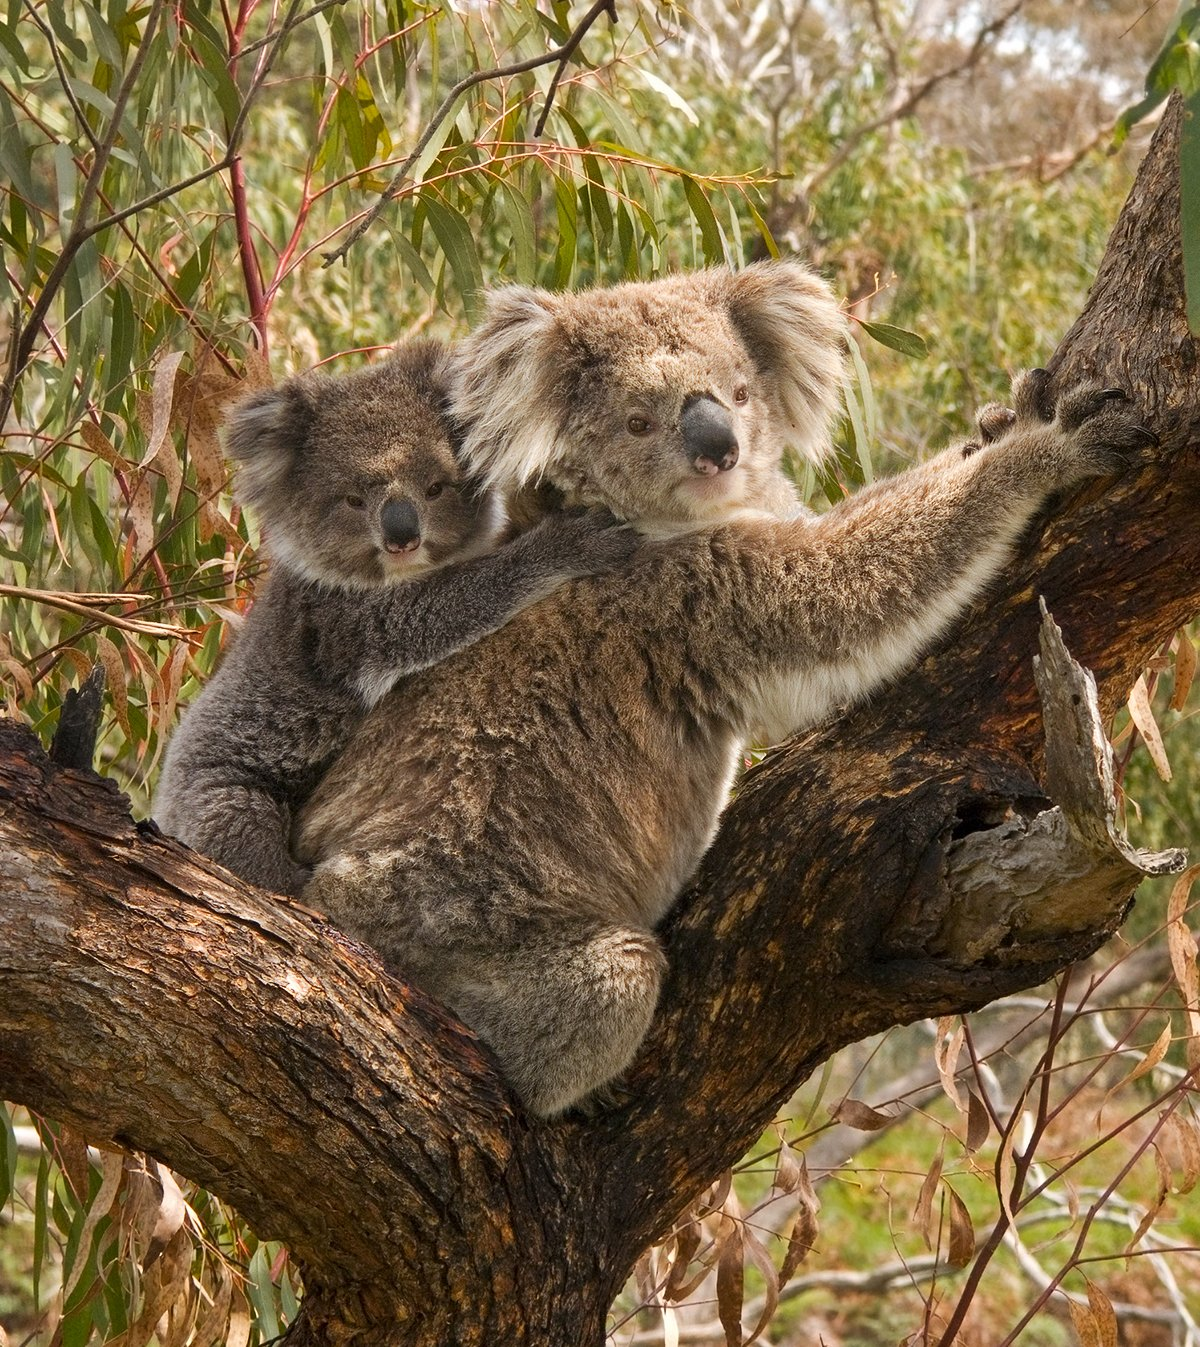 Adorable Baby Koala Mistakes Pet Dog For Its Mother Kids ...